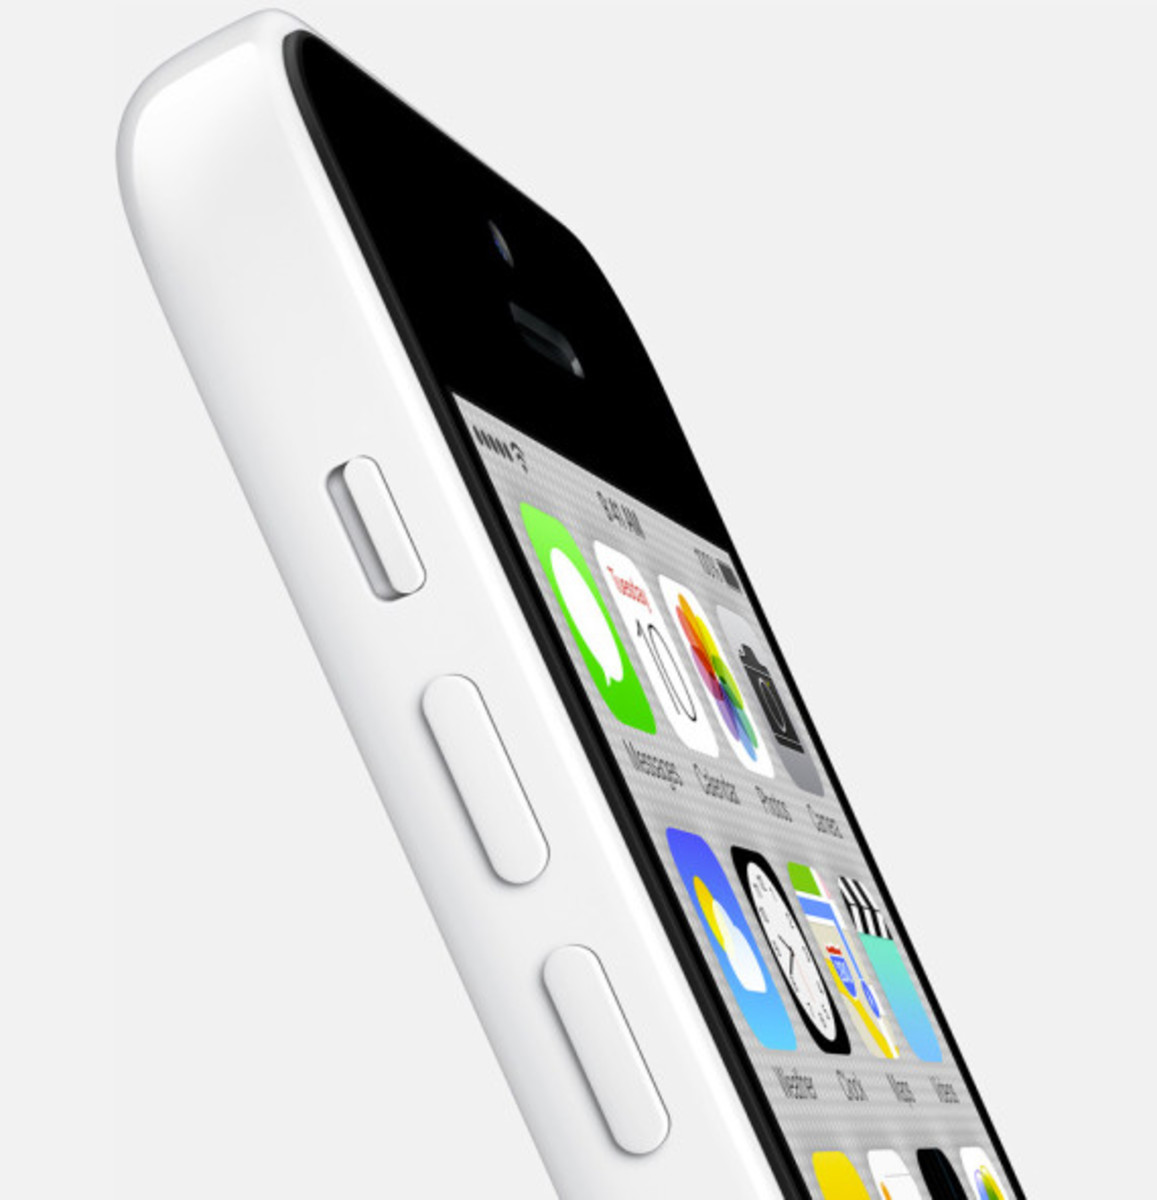 Apple iPhone 5C - Officially Unveiled - 11